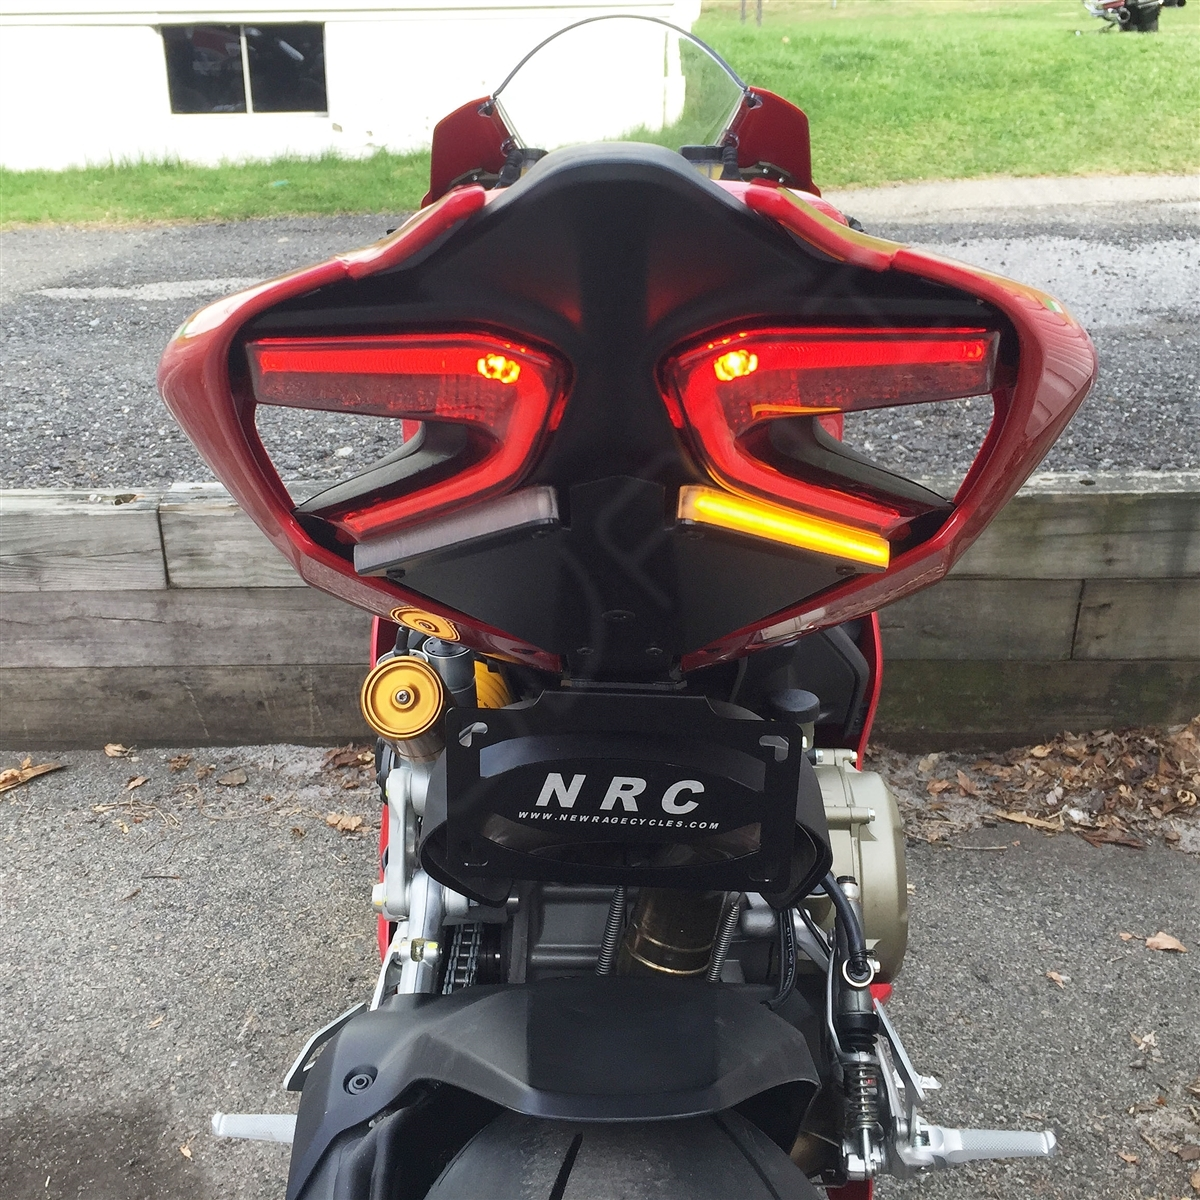 Fender Eliminator Kit By Nrc Ducati 1299 Panigale S